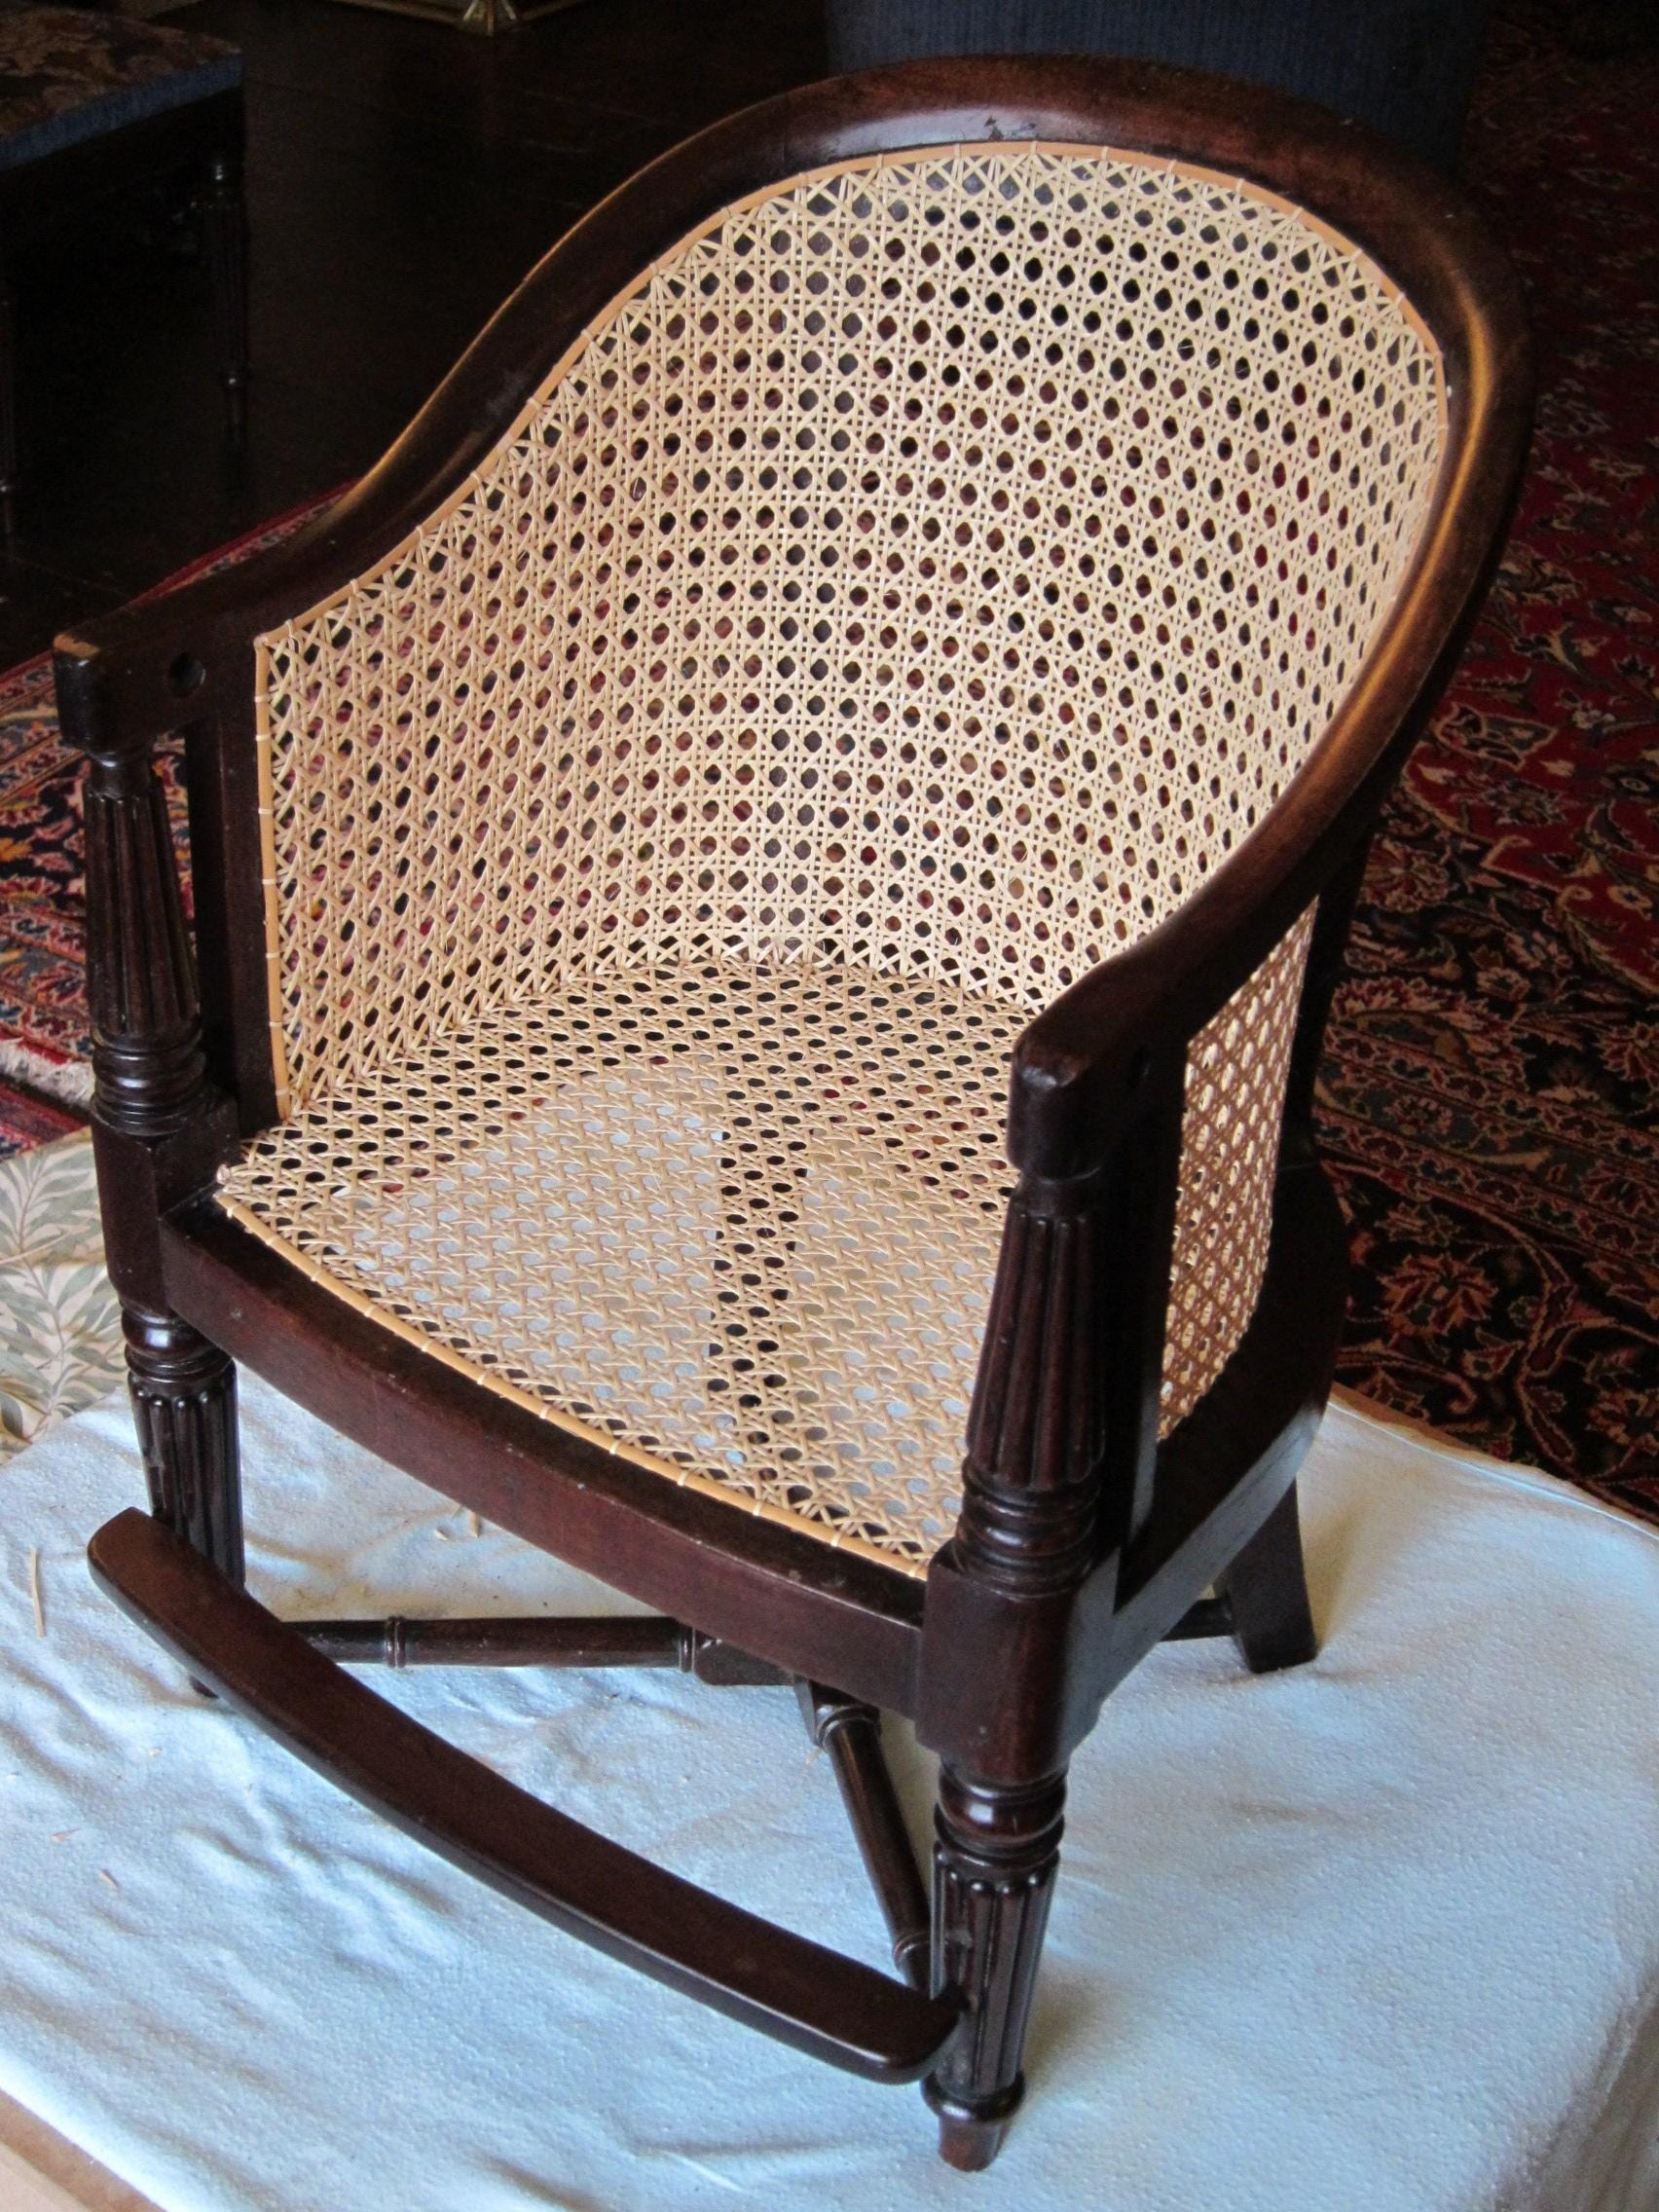 Childu0027s caned chair used by John Ruskin showing the typical 6 way pattern on both the seat and back panels. Chair re-caned by the author. & Caned Furniture Case Study: Design Encounters u2013 East India Company ...